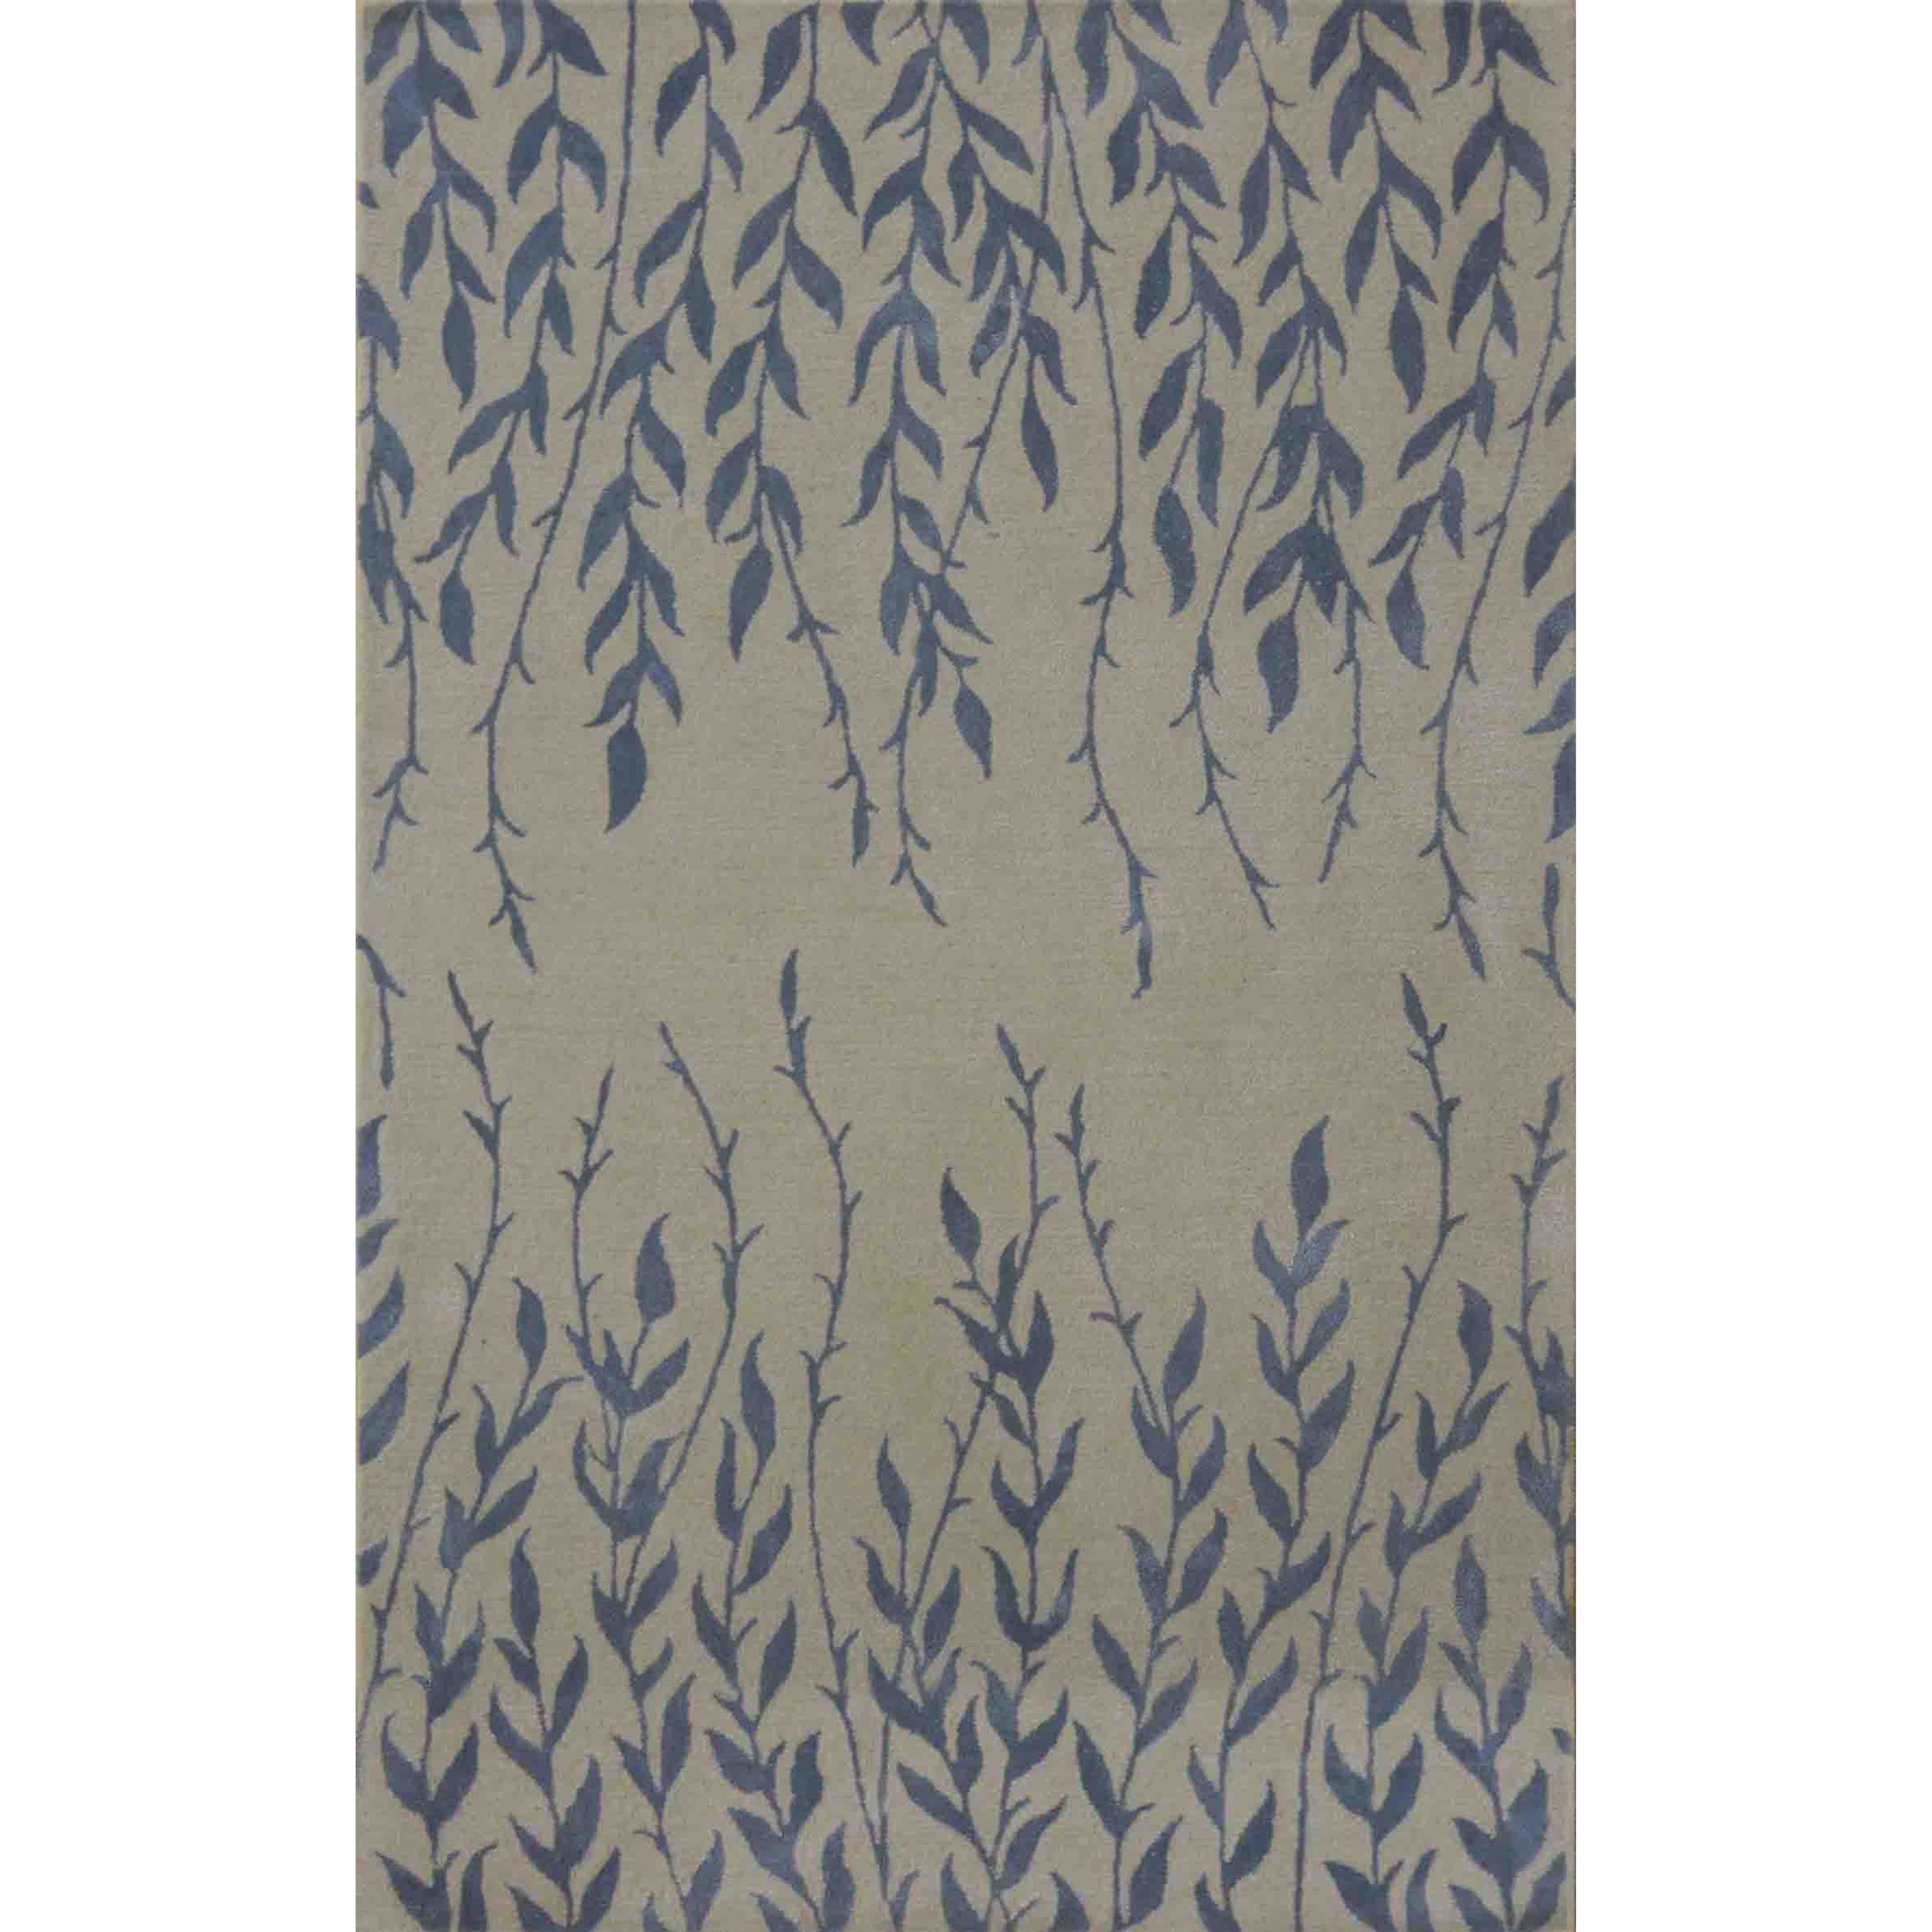 8' X 11' Ivory Tranquility Area Rug